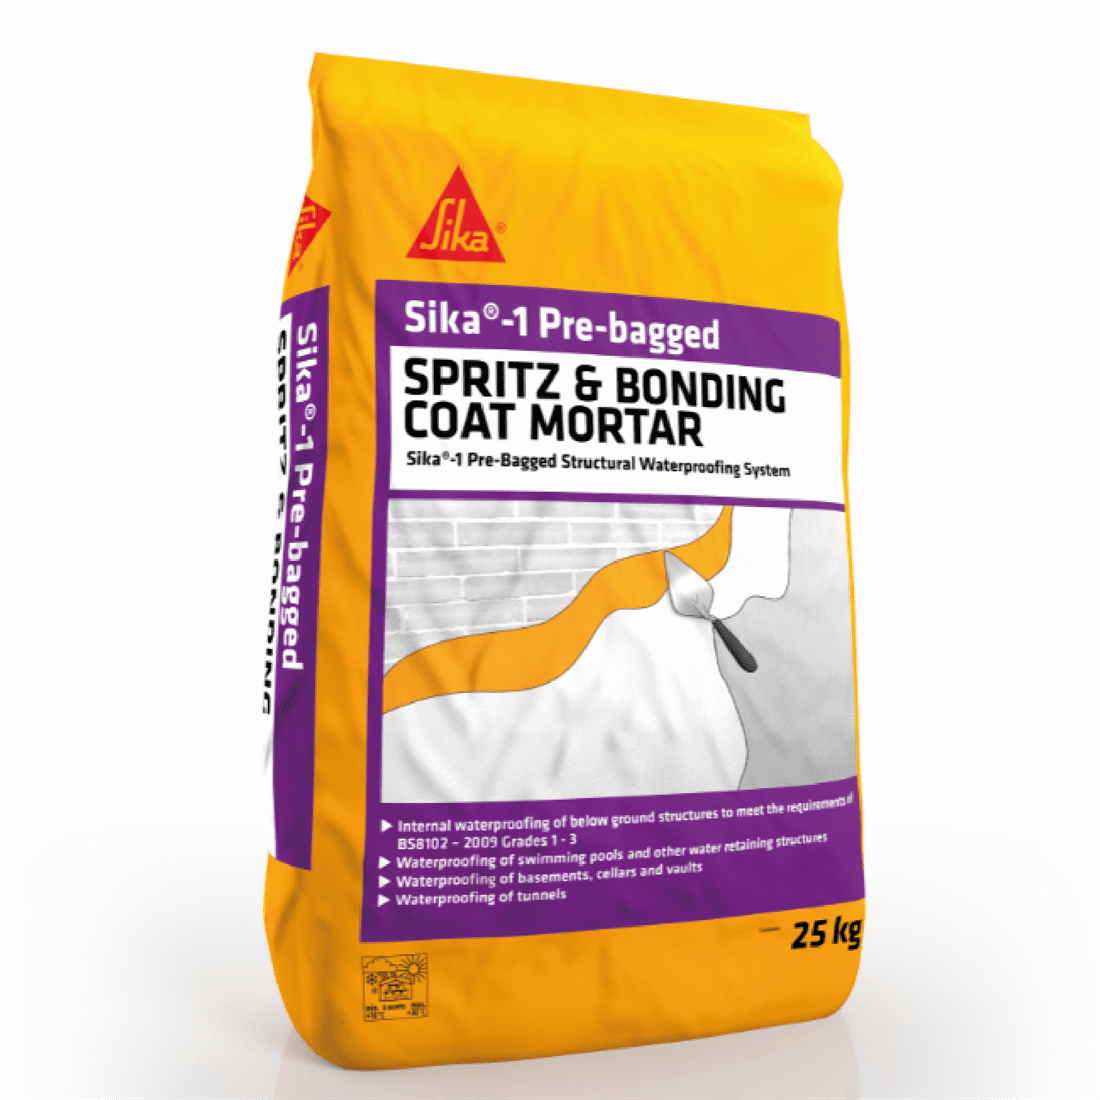 Sika-1 Pre-Bagged Spritz Mortar - Free Next Day Express Delivery